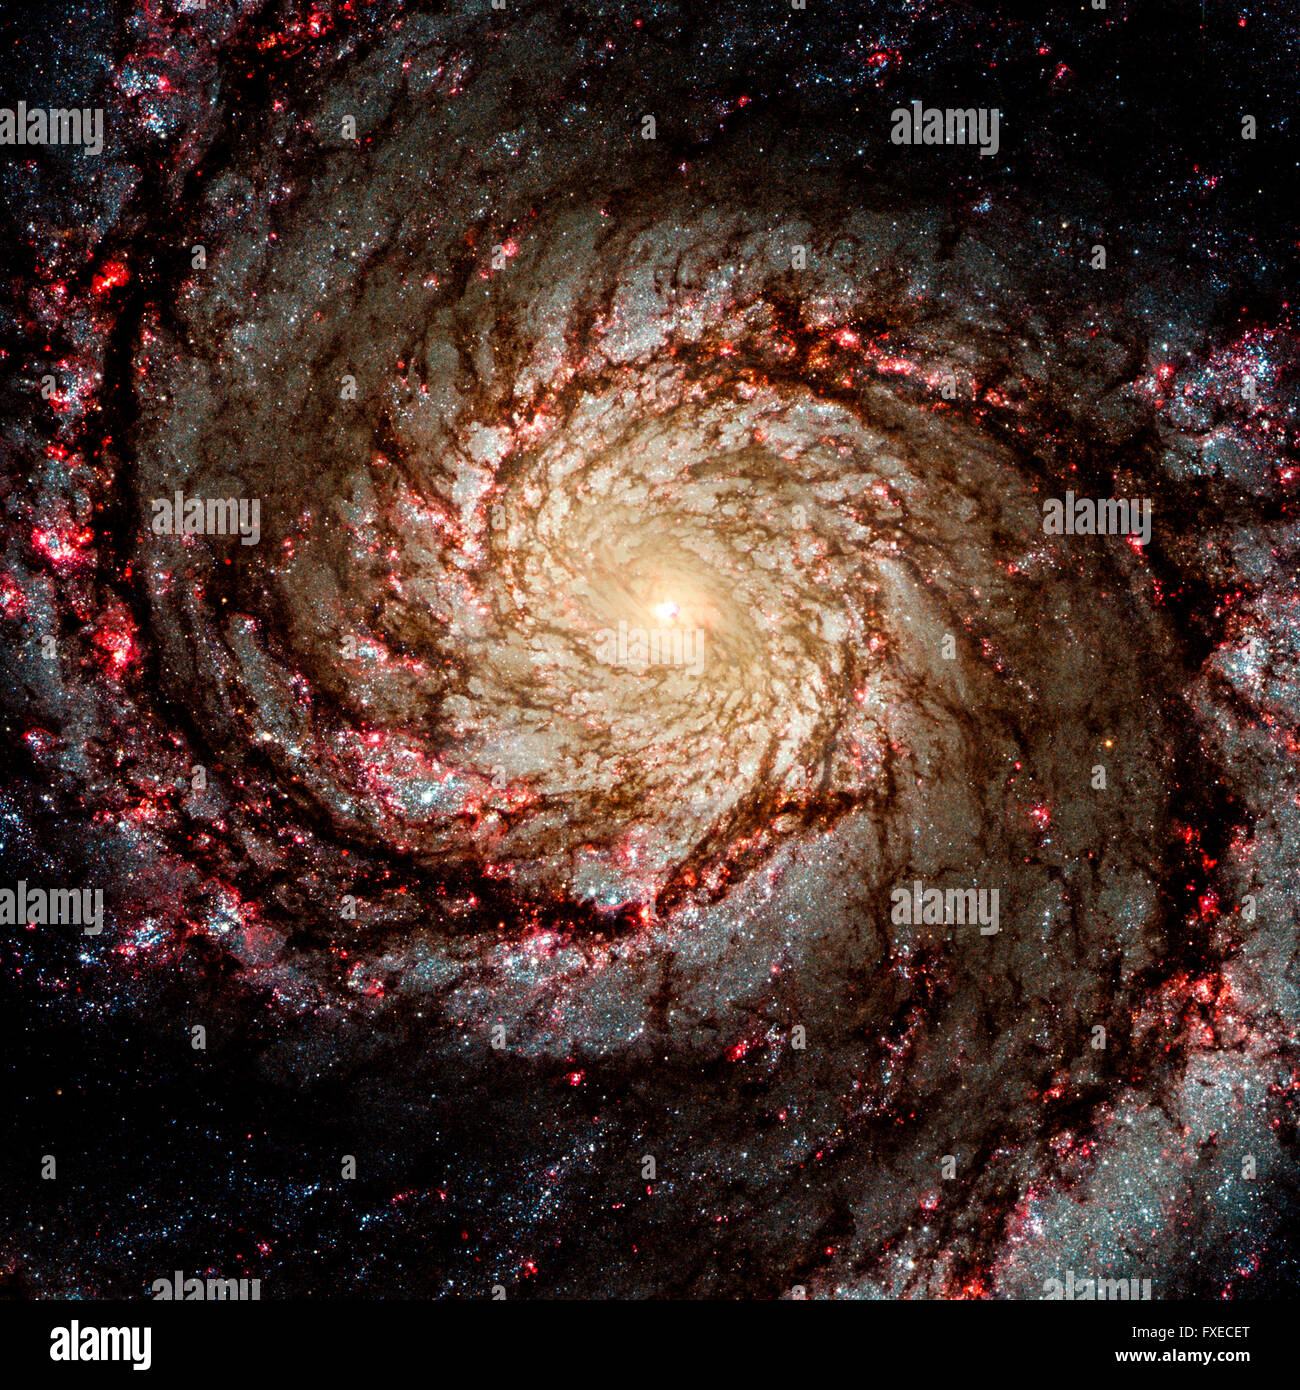 The galaxy system with a bright optical center - Stock Image